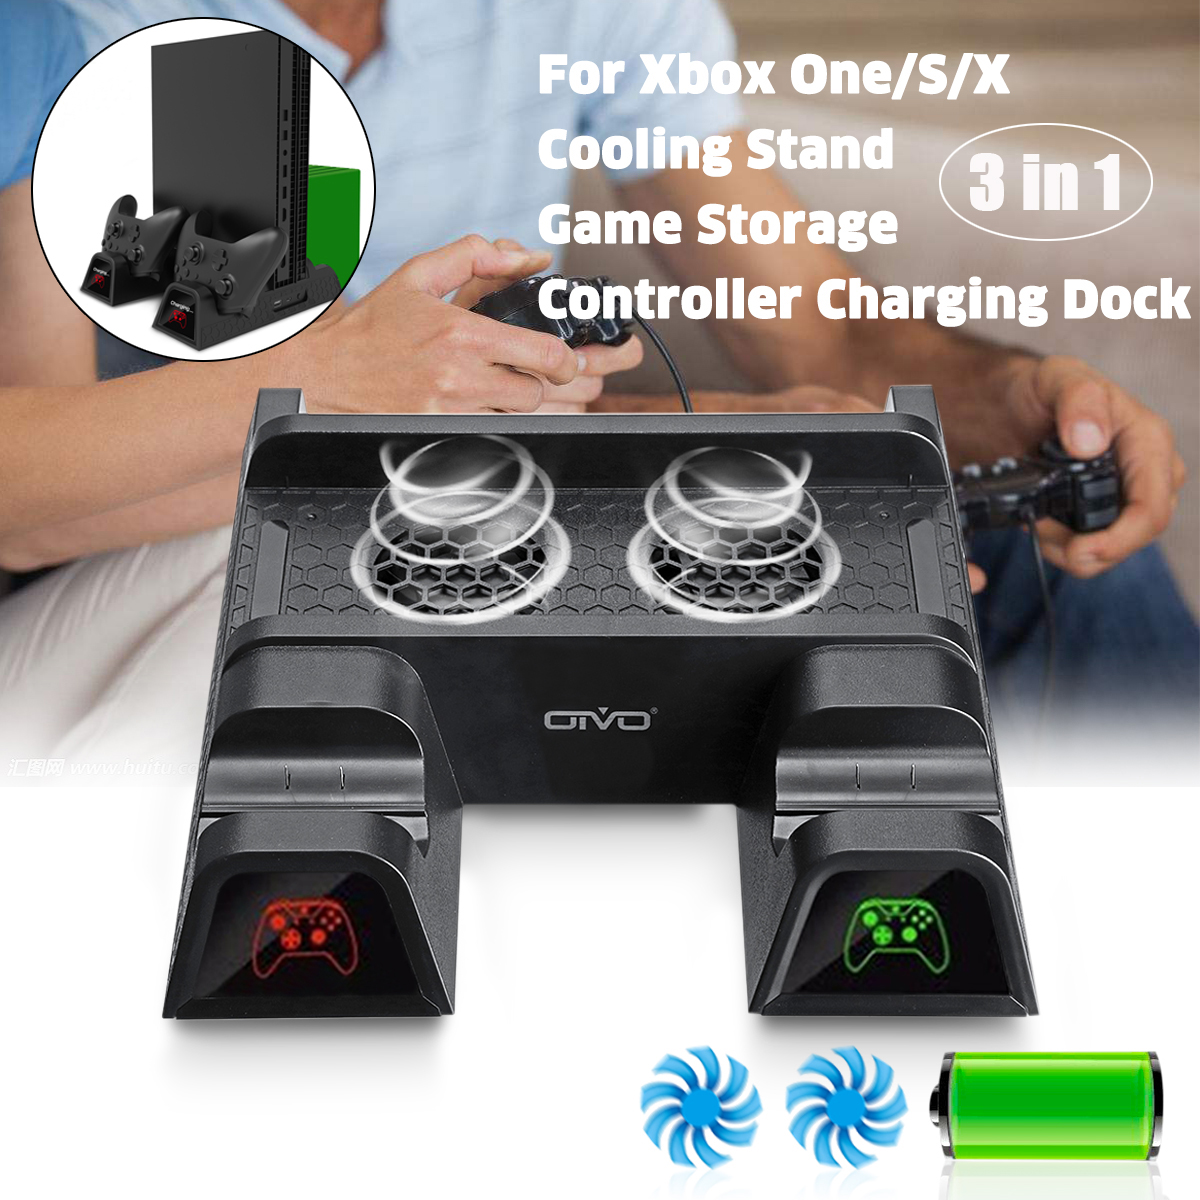 New 2 Game Charger 2 Cooling Fan Stand With 12 Game Storage Multi-functional Charge Cooler For XBOX ONE For XBOX ONE S/X project cars 2 collector s edition xbox one